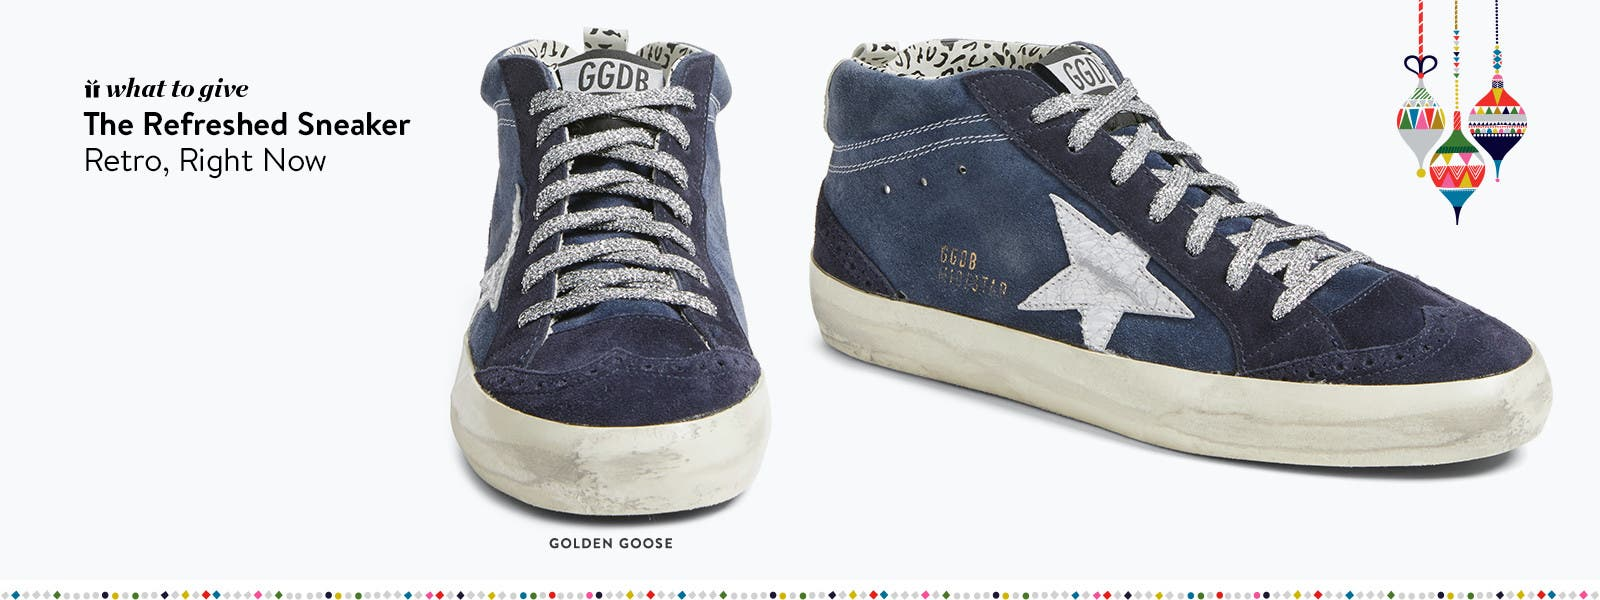 Designer holiday gifts: Golden Goose sneaker.